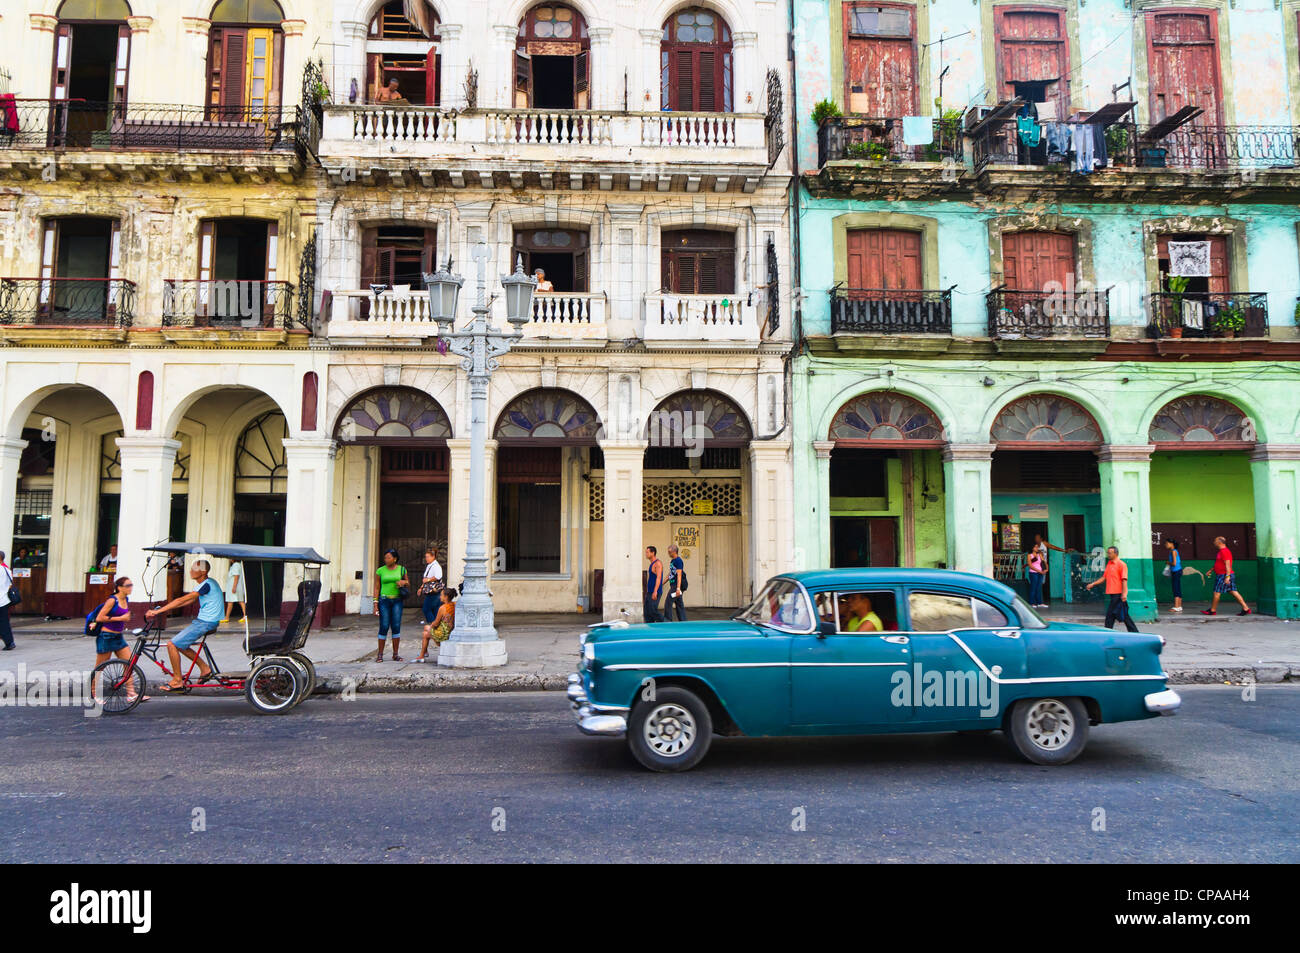 havana-cuba-street-scene-with-old-car-and-worn-out-buildings-CPAAH4.jpg